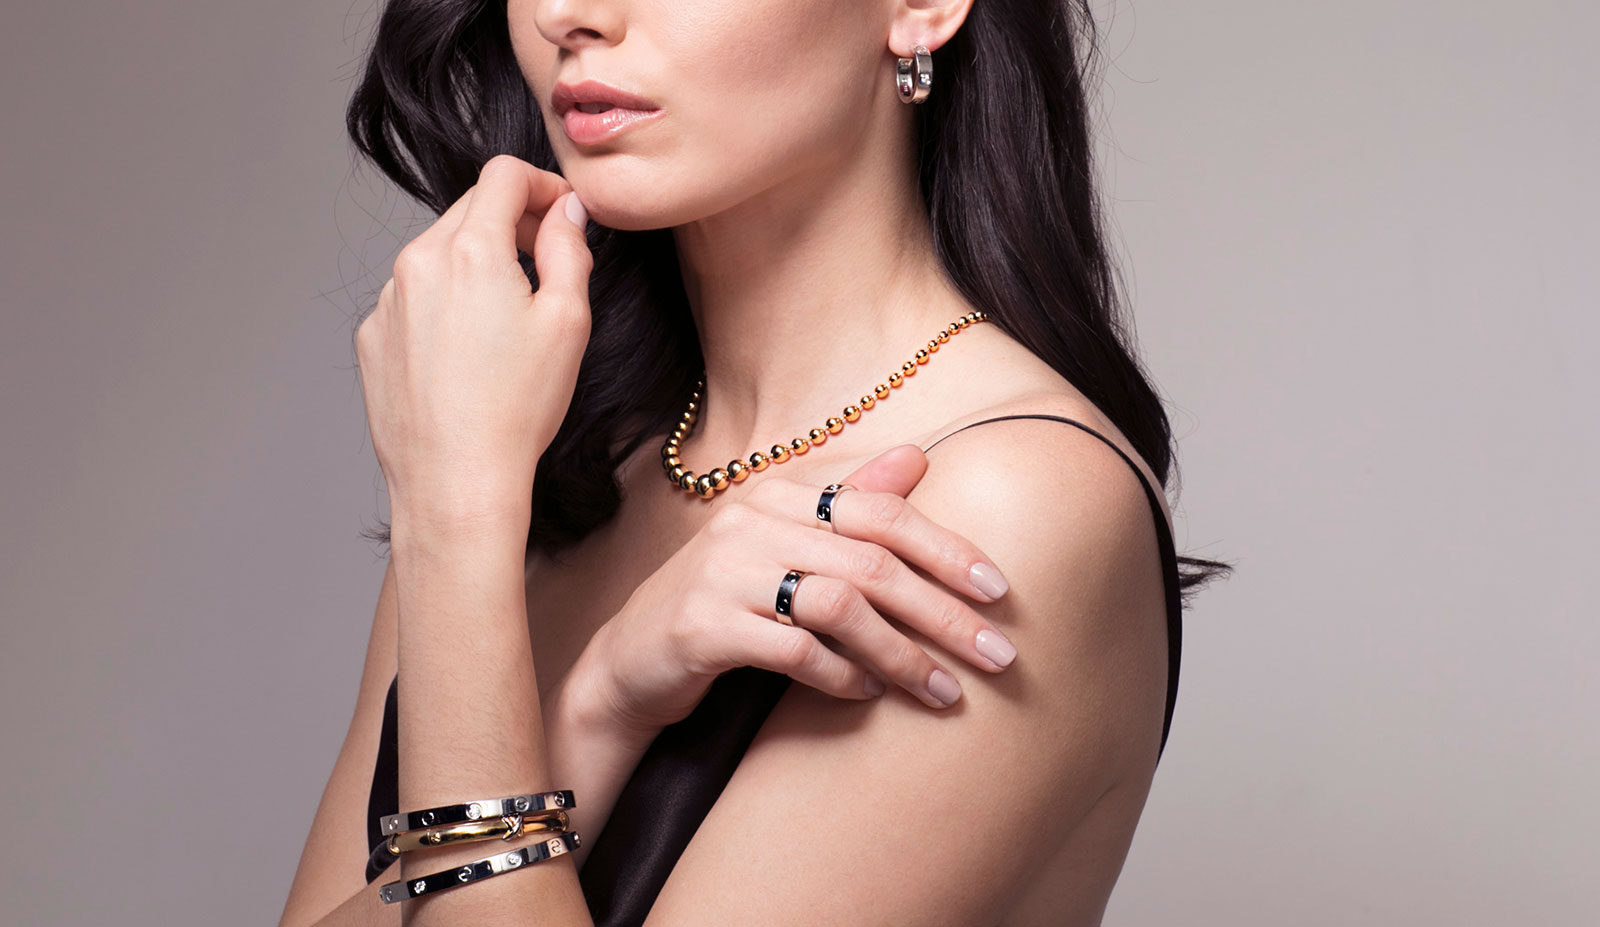 Cartier 'Love' bangles, rings and earrings from Court&Covet in 18k white and yellow gold, and ball necklace in 18k yellow gold